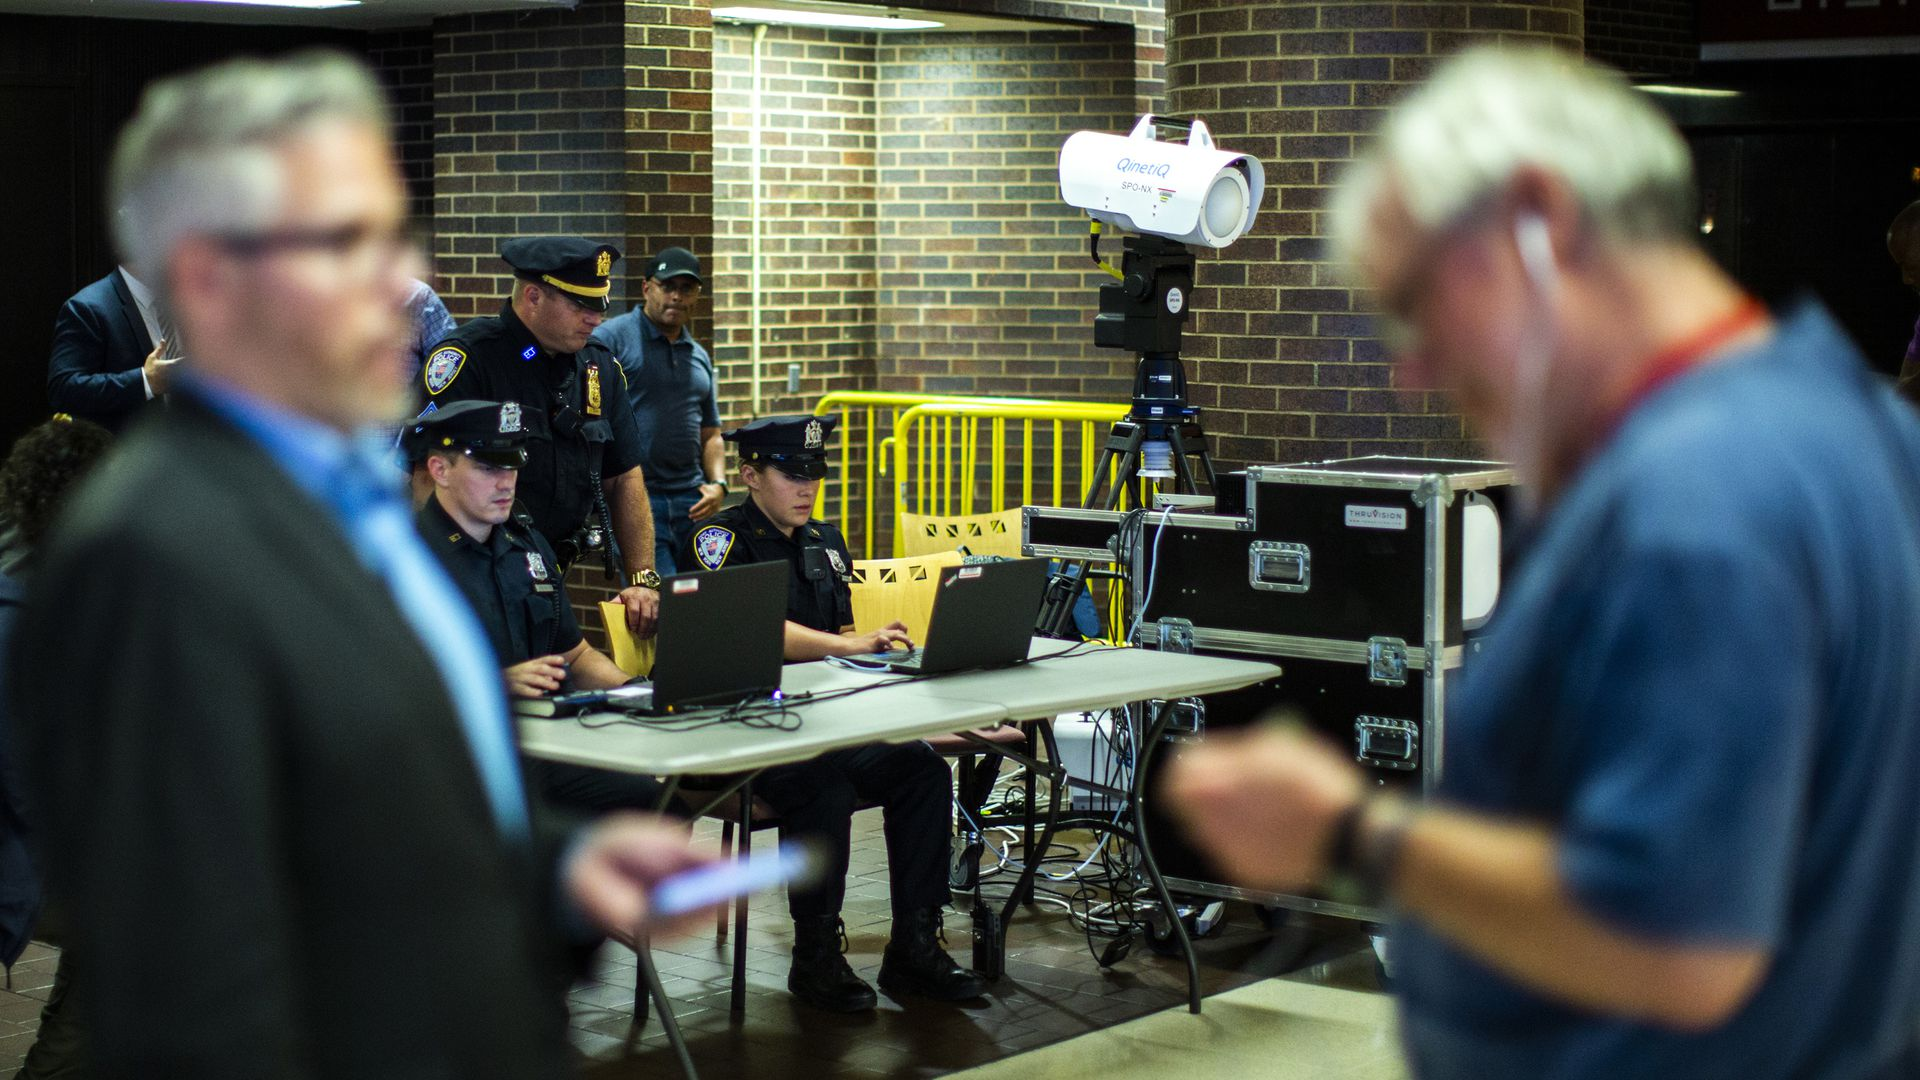 Two men walk by a table as police test body scanning equipment.